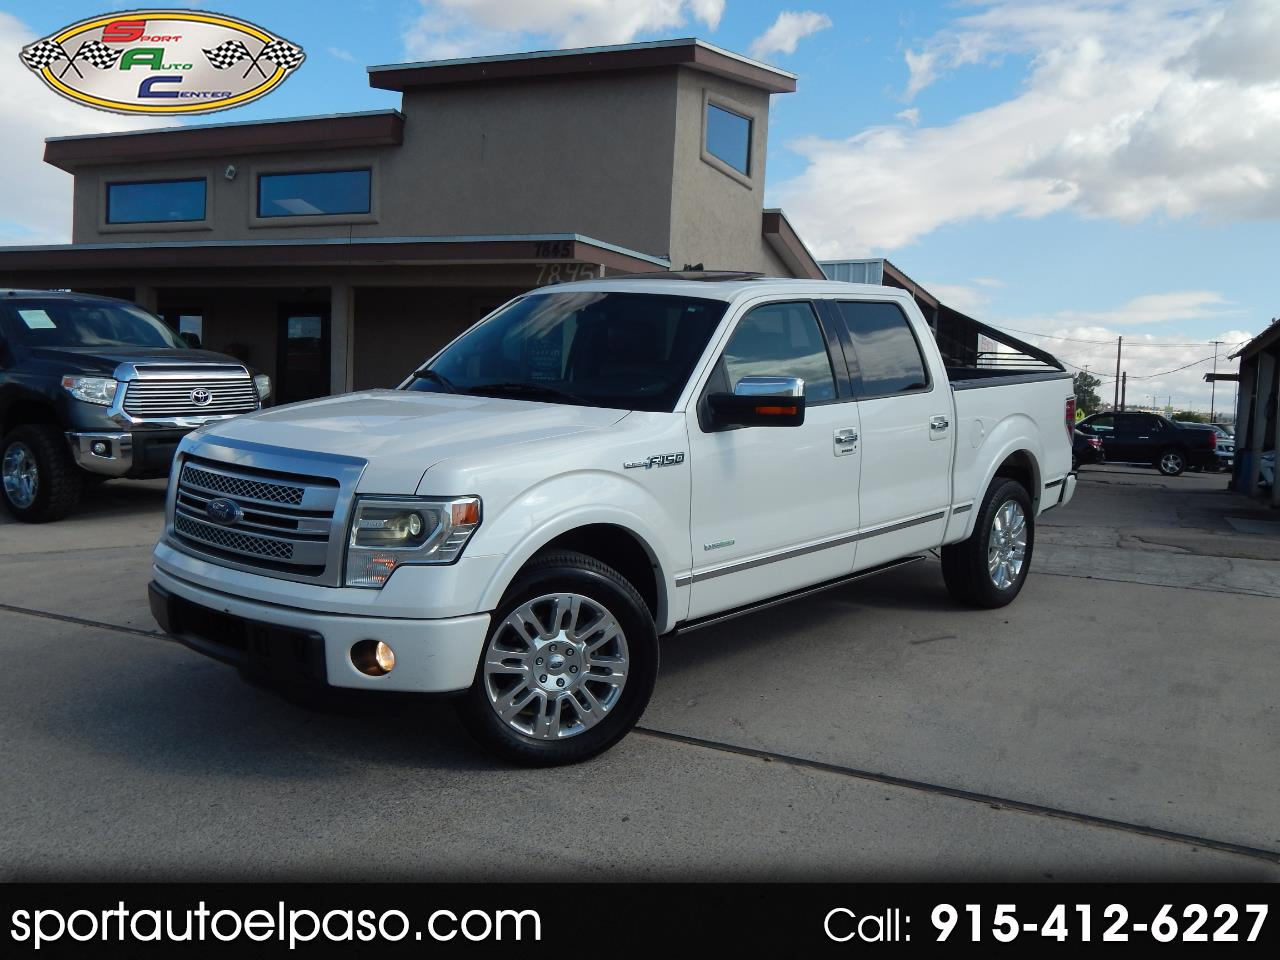 Ford F-150 Platinum SuperCrew 5.5-ft. Bed 2WD 2014